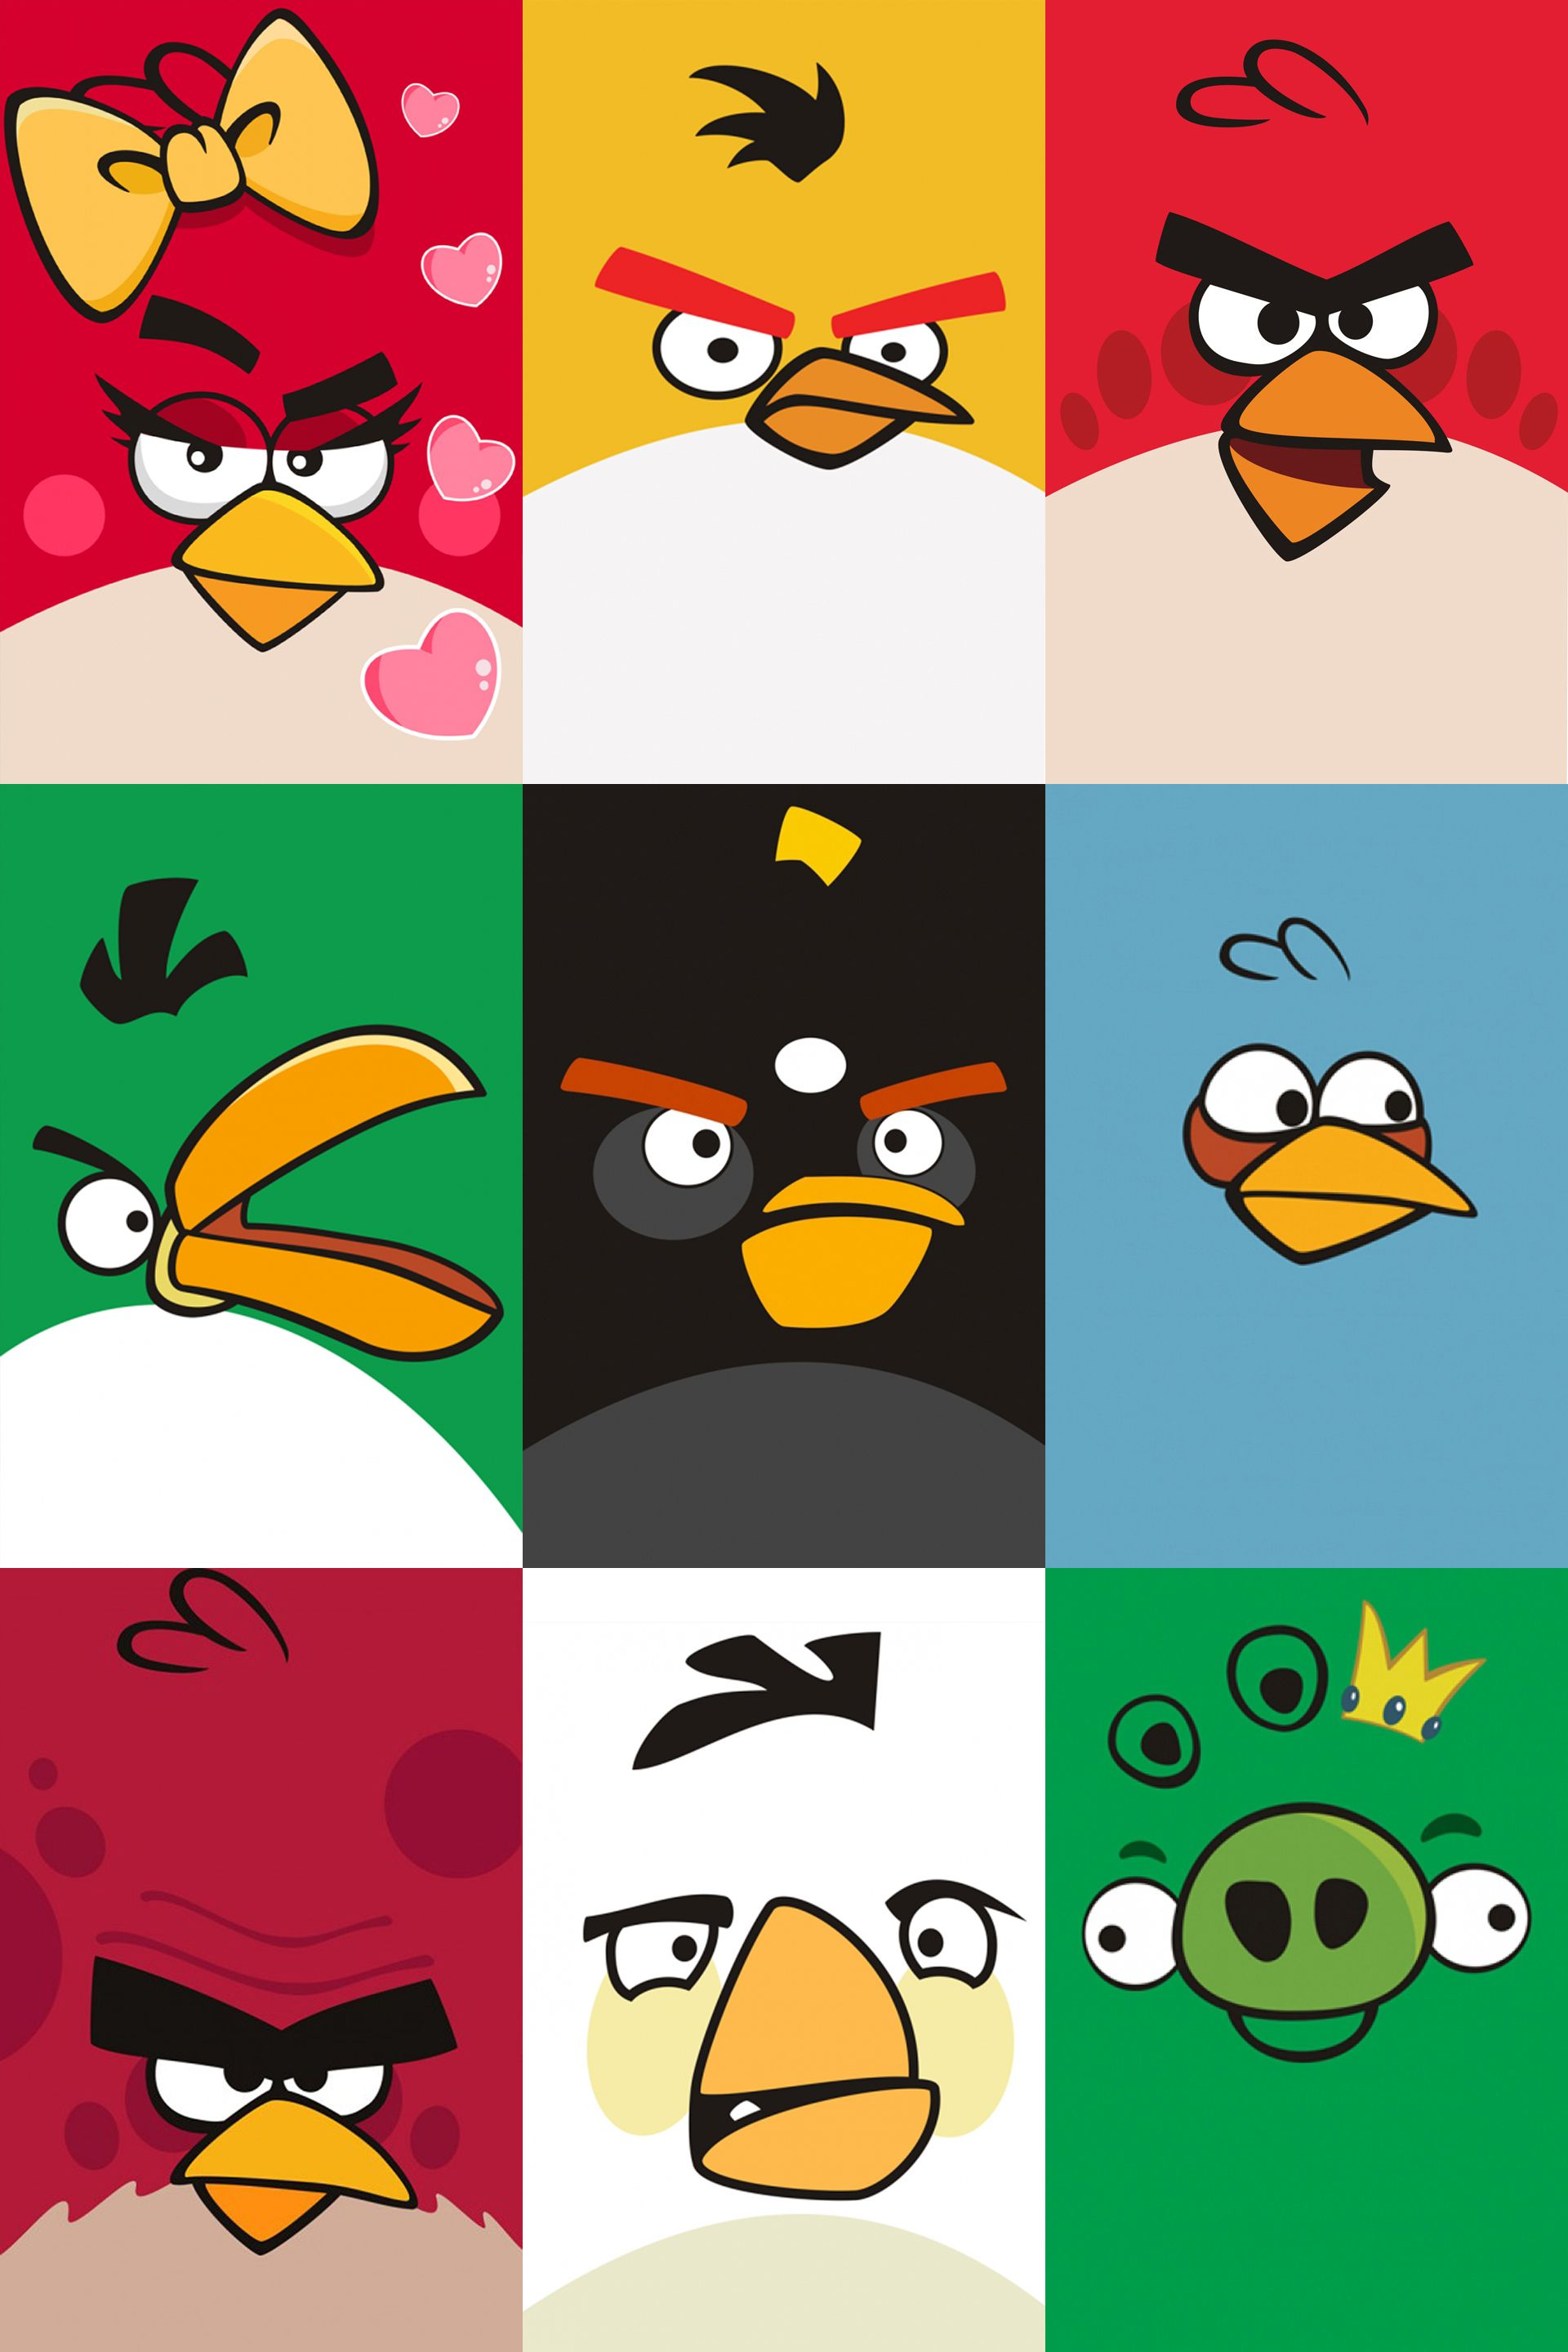 Angry bird | Things I make | Pinterest | Stickers infantiles, Cumple ...